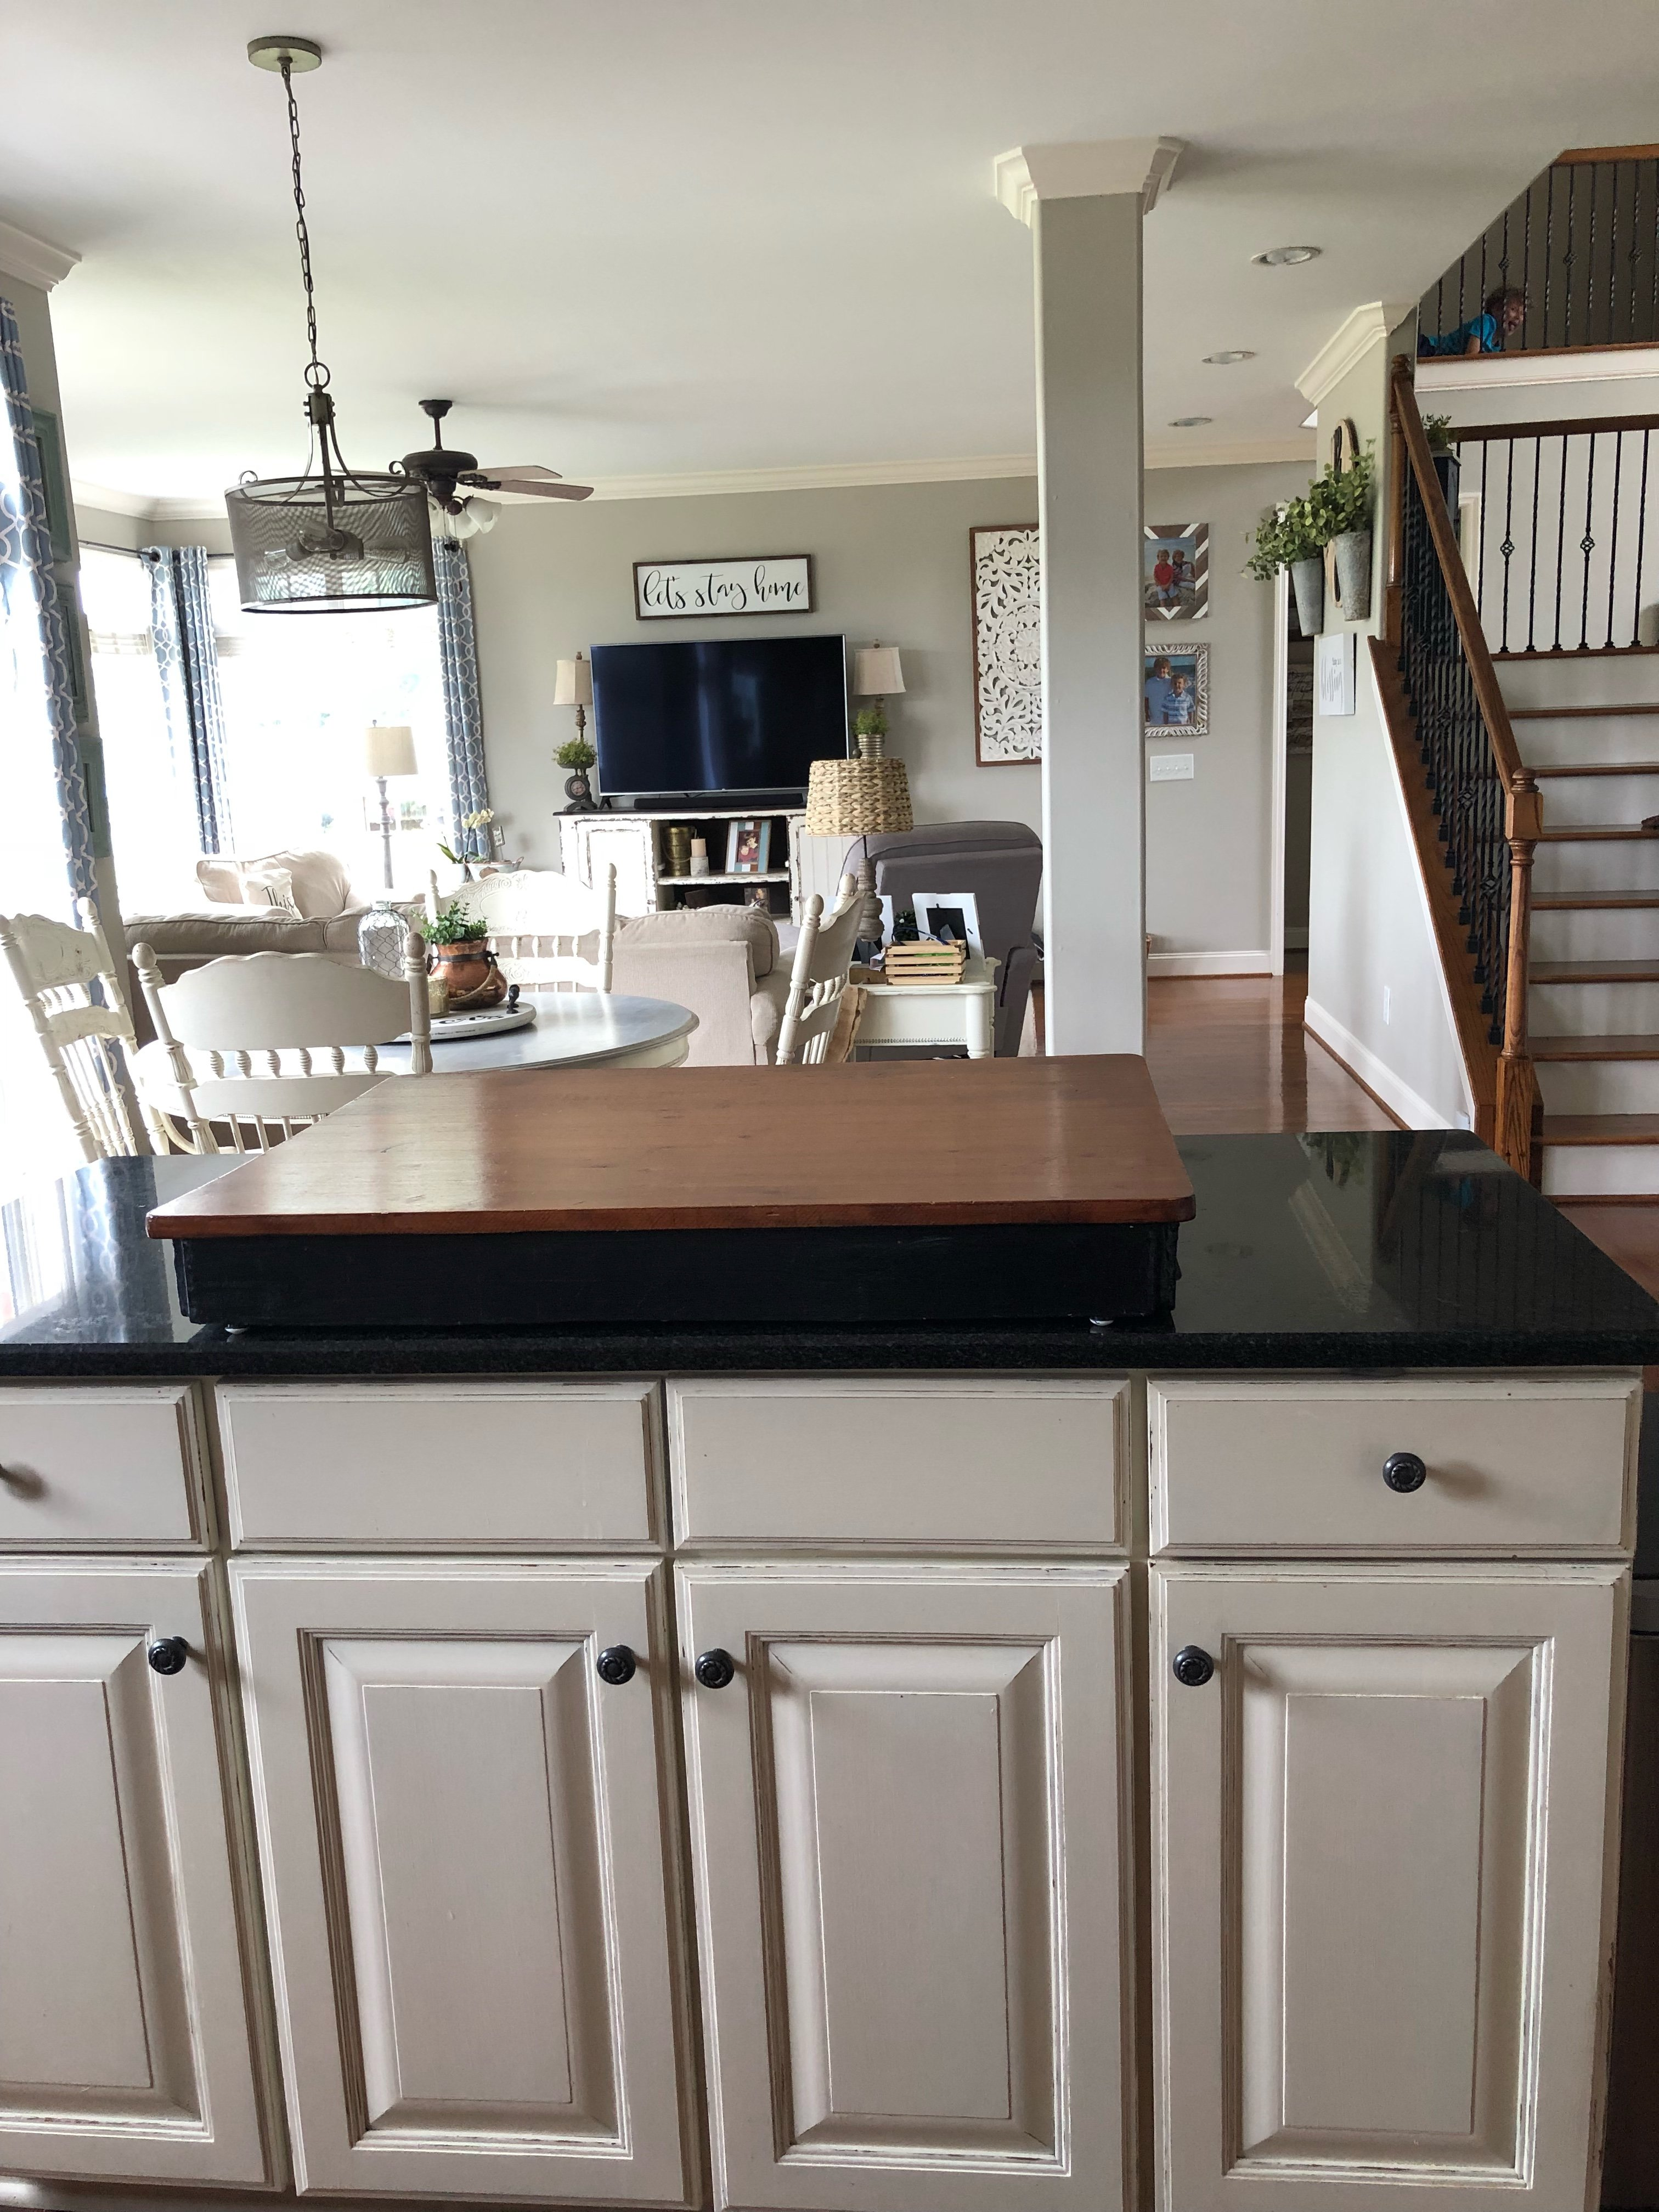 My painted kitchen cabinet makeover...before, after and everything on my kitchen floor tile, my kitchen sink, my kitchen counter,